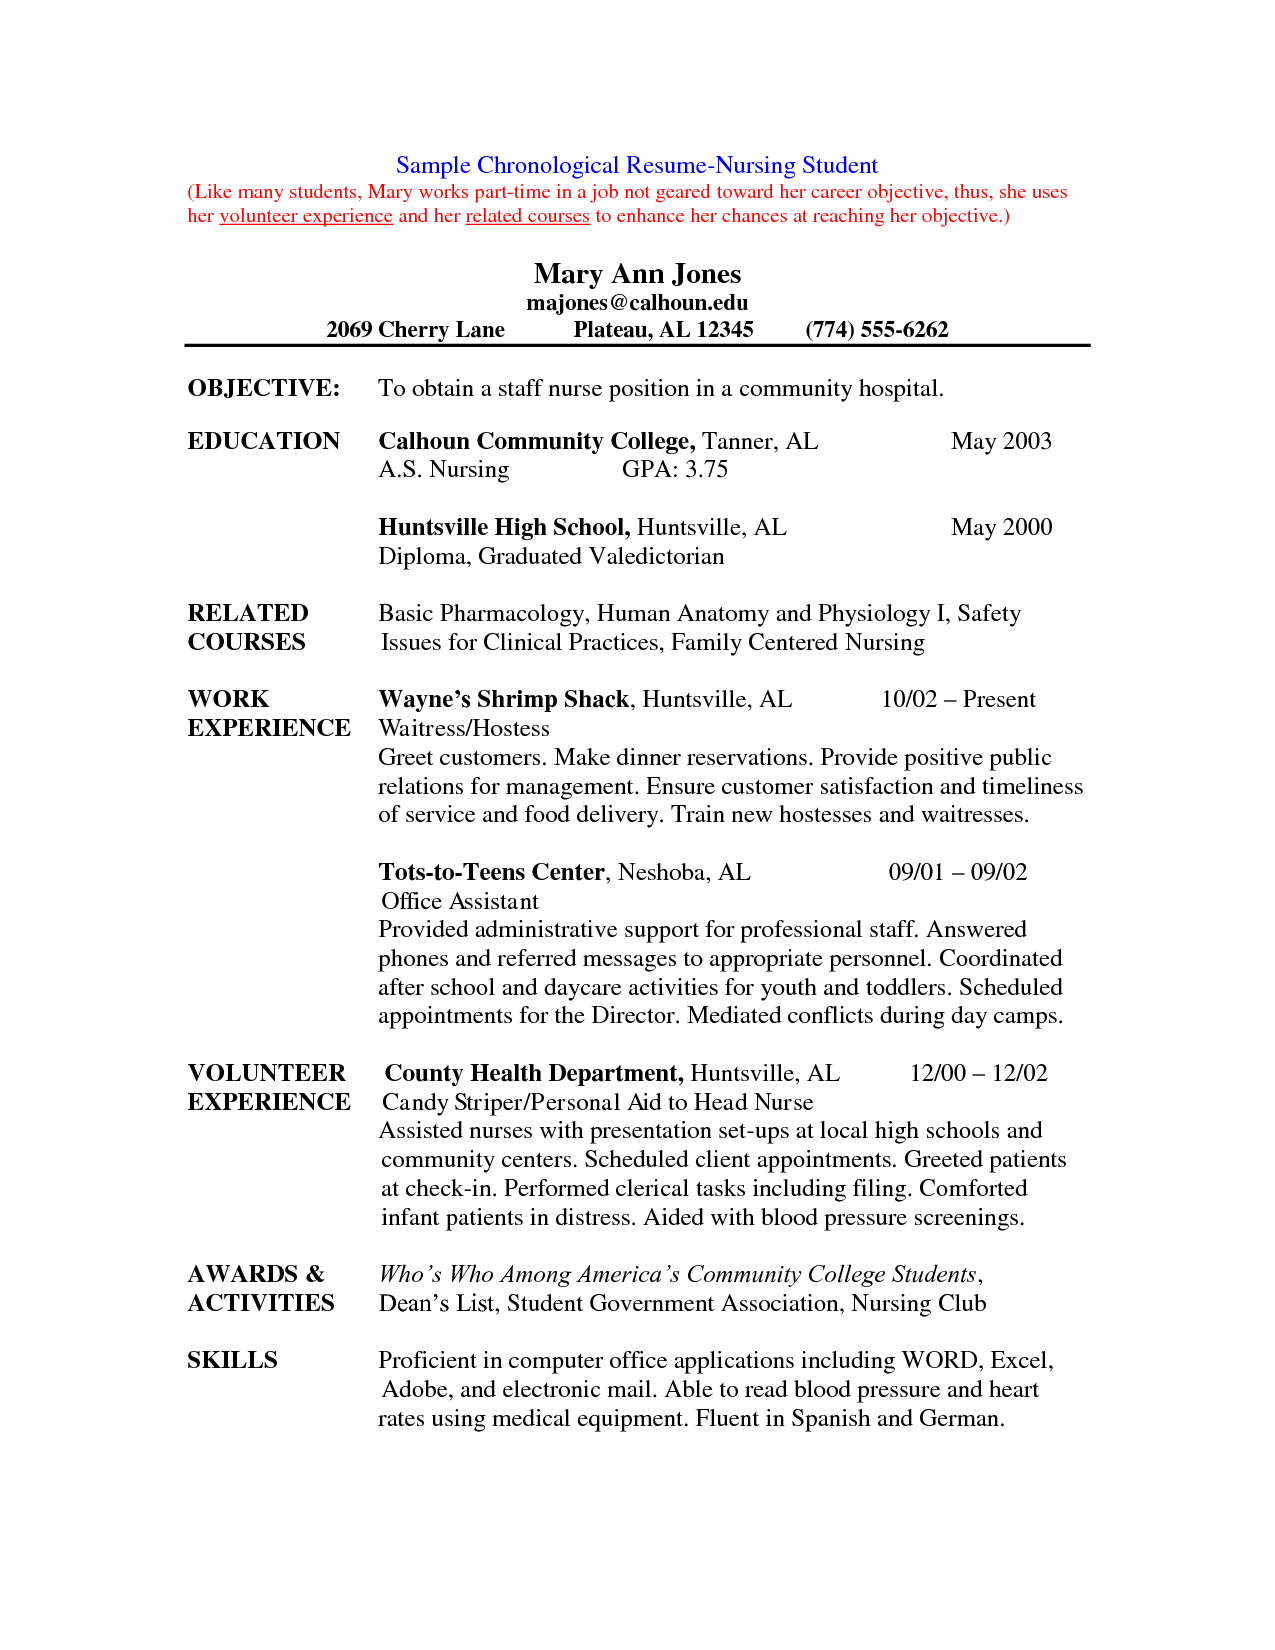 example student nurse resume sample nursing school cover letters for nursing job application pdf - Nurse Resume Cover Letter